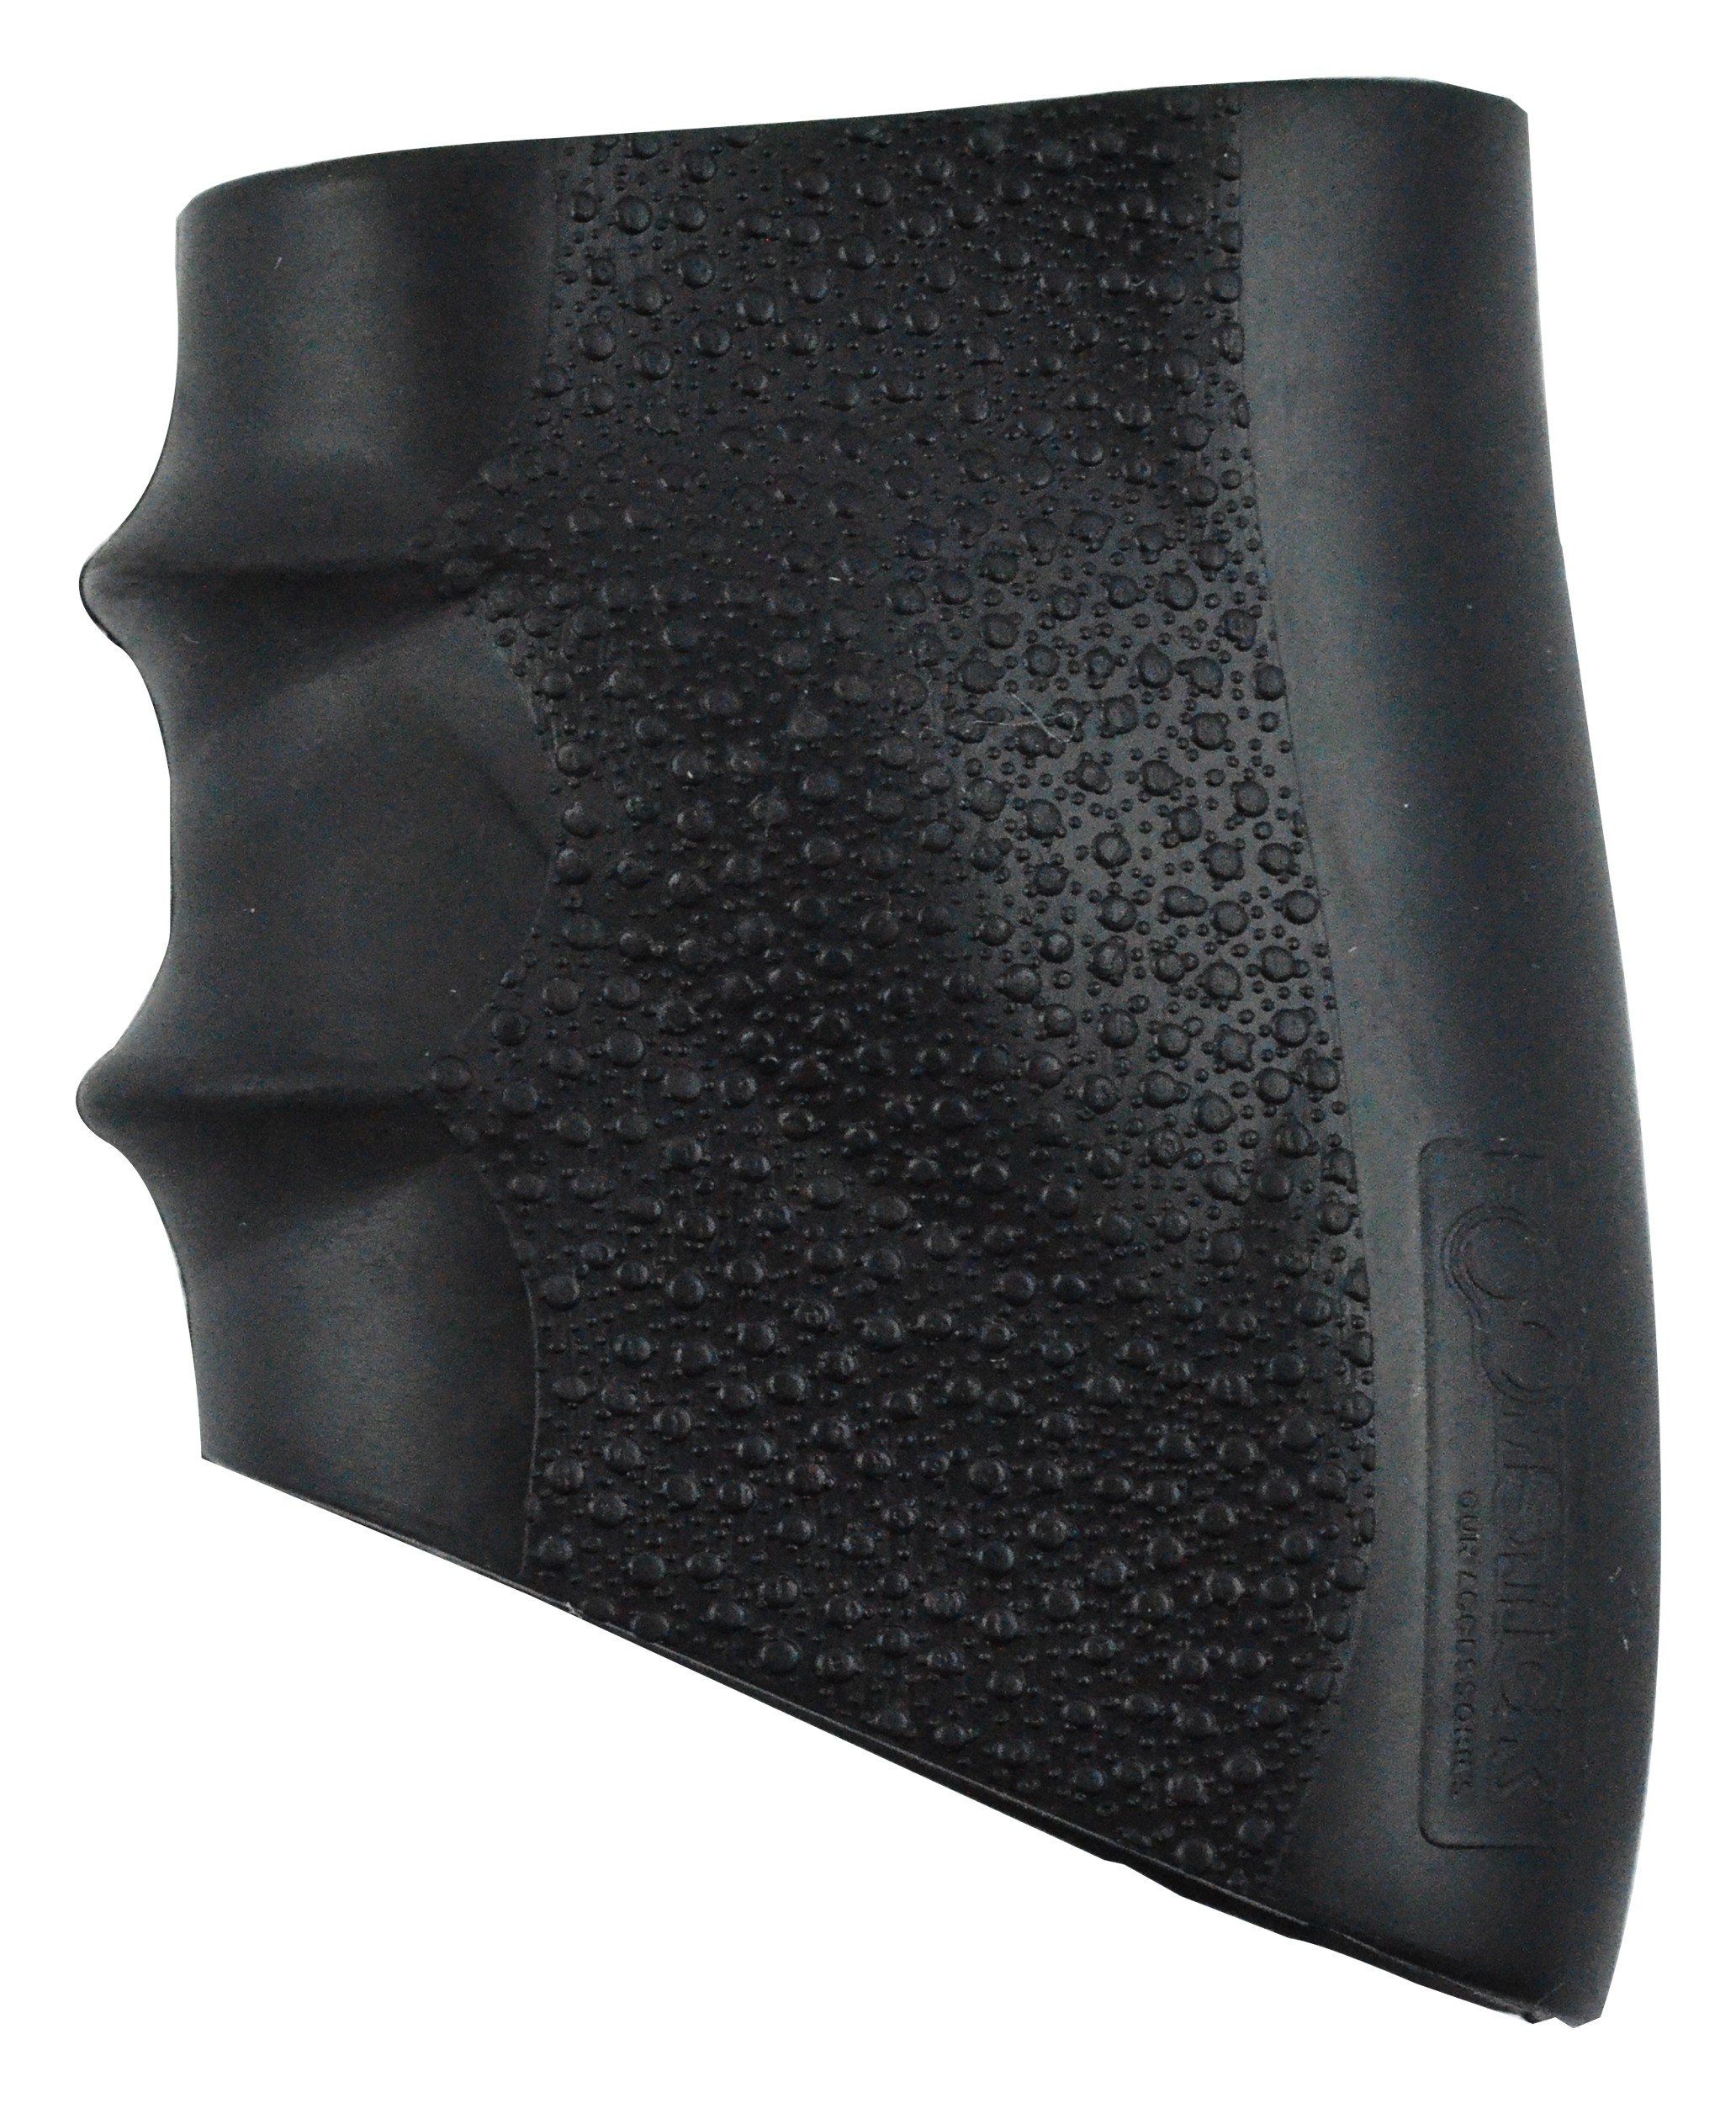 Universal Grip Sleeve - Fits some Glock, S&W, Sigma, Sig Sauer, Ruger, Colt Double Eagle, Beretta, Browning, Taurus, and Challenger Handguns